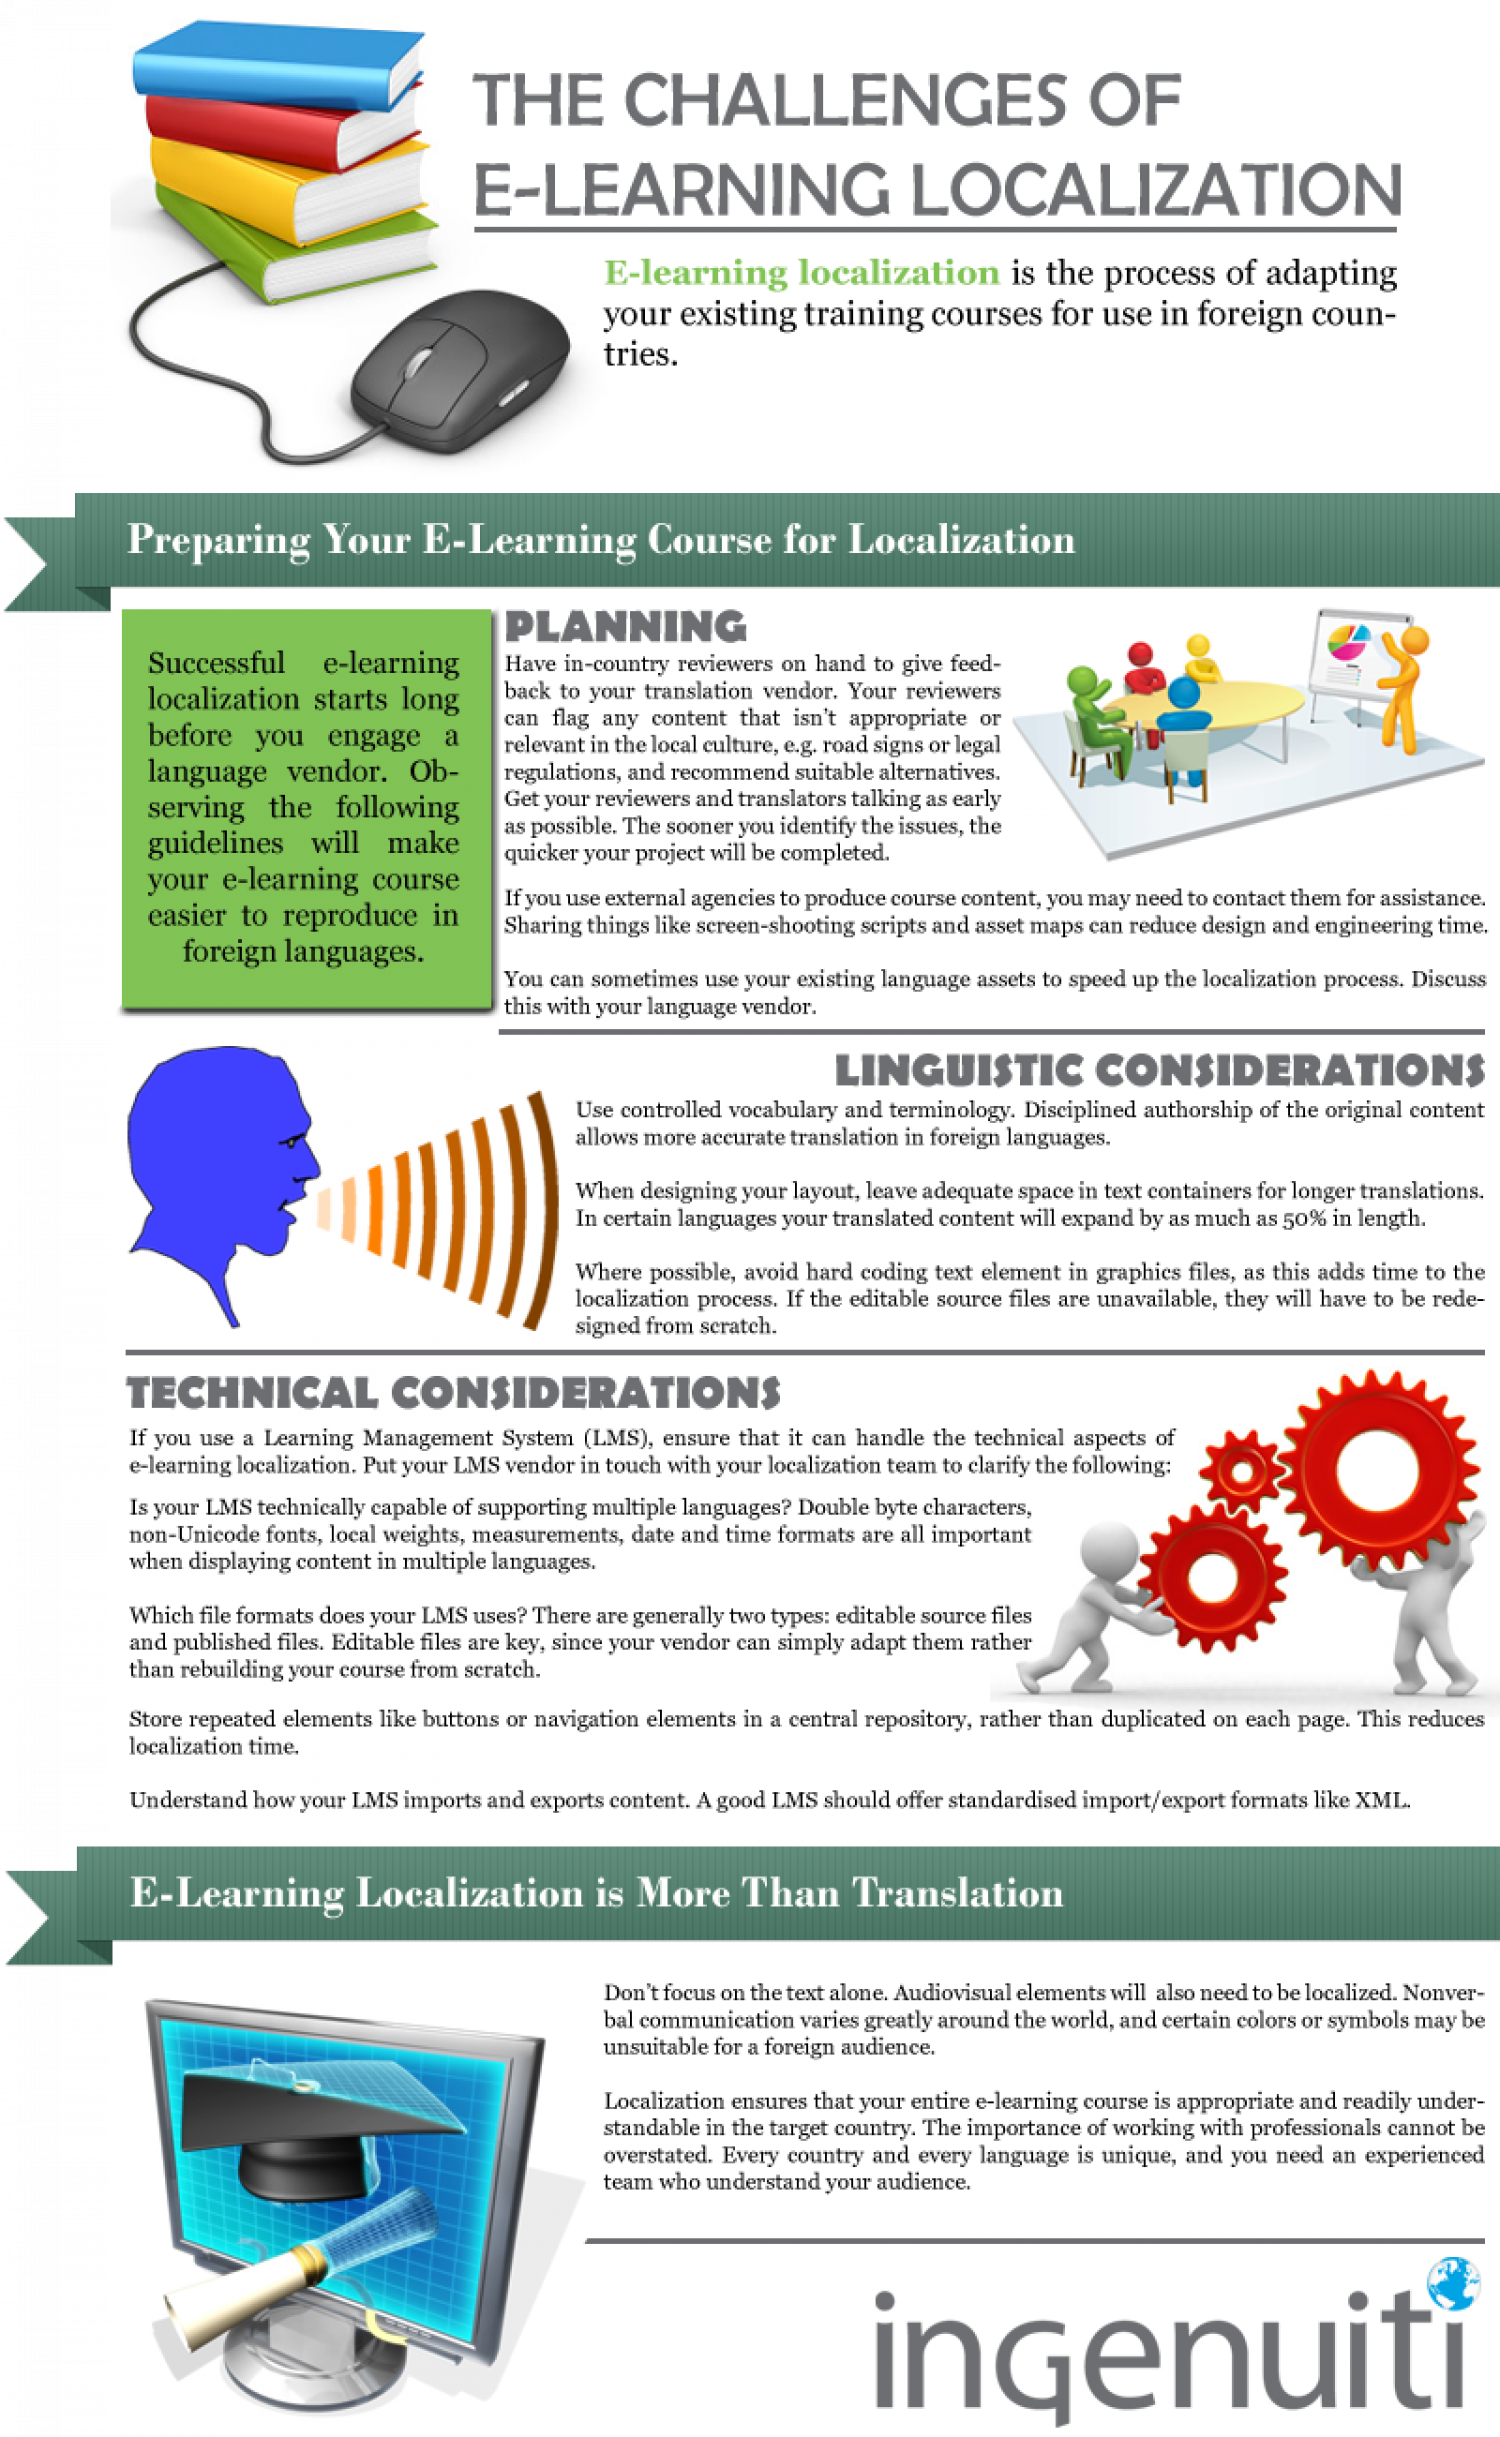 E-learning Localization Challenges Infographic